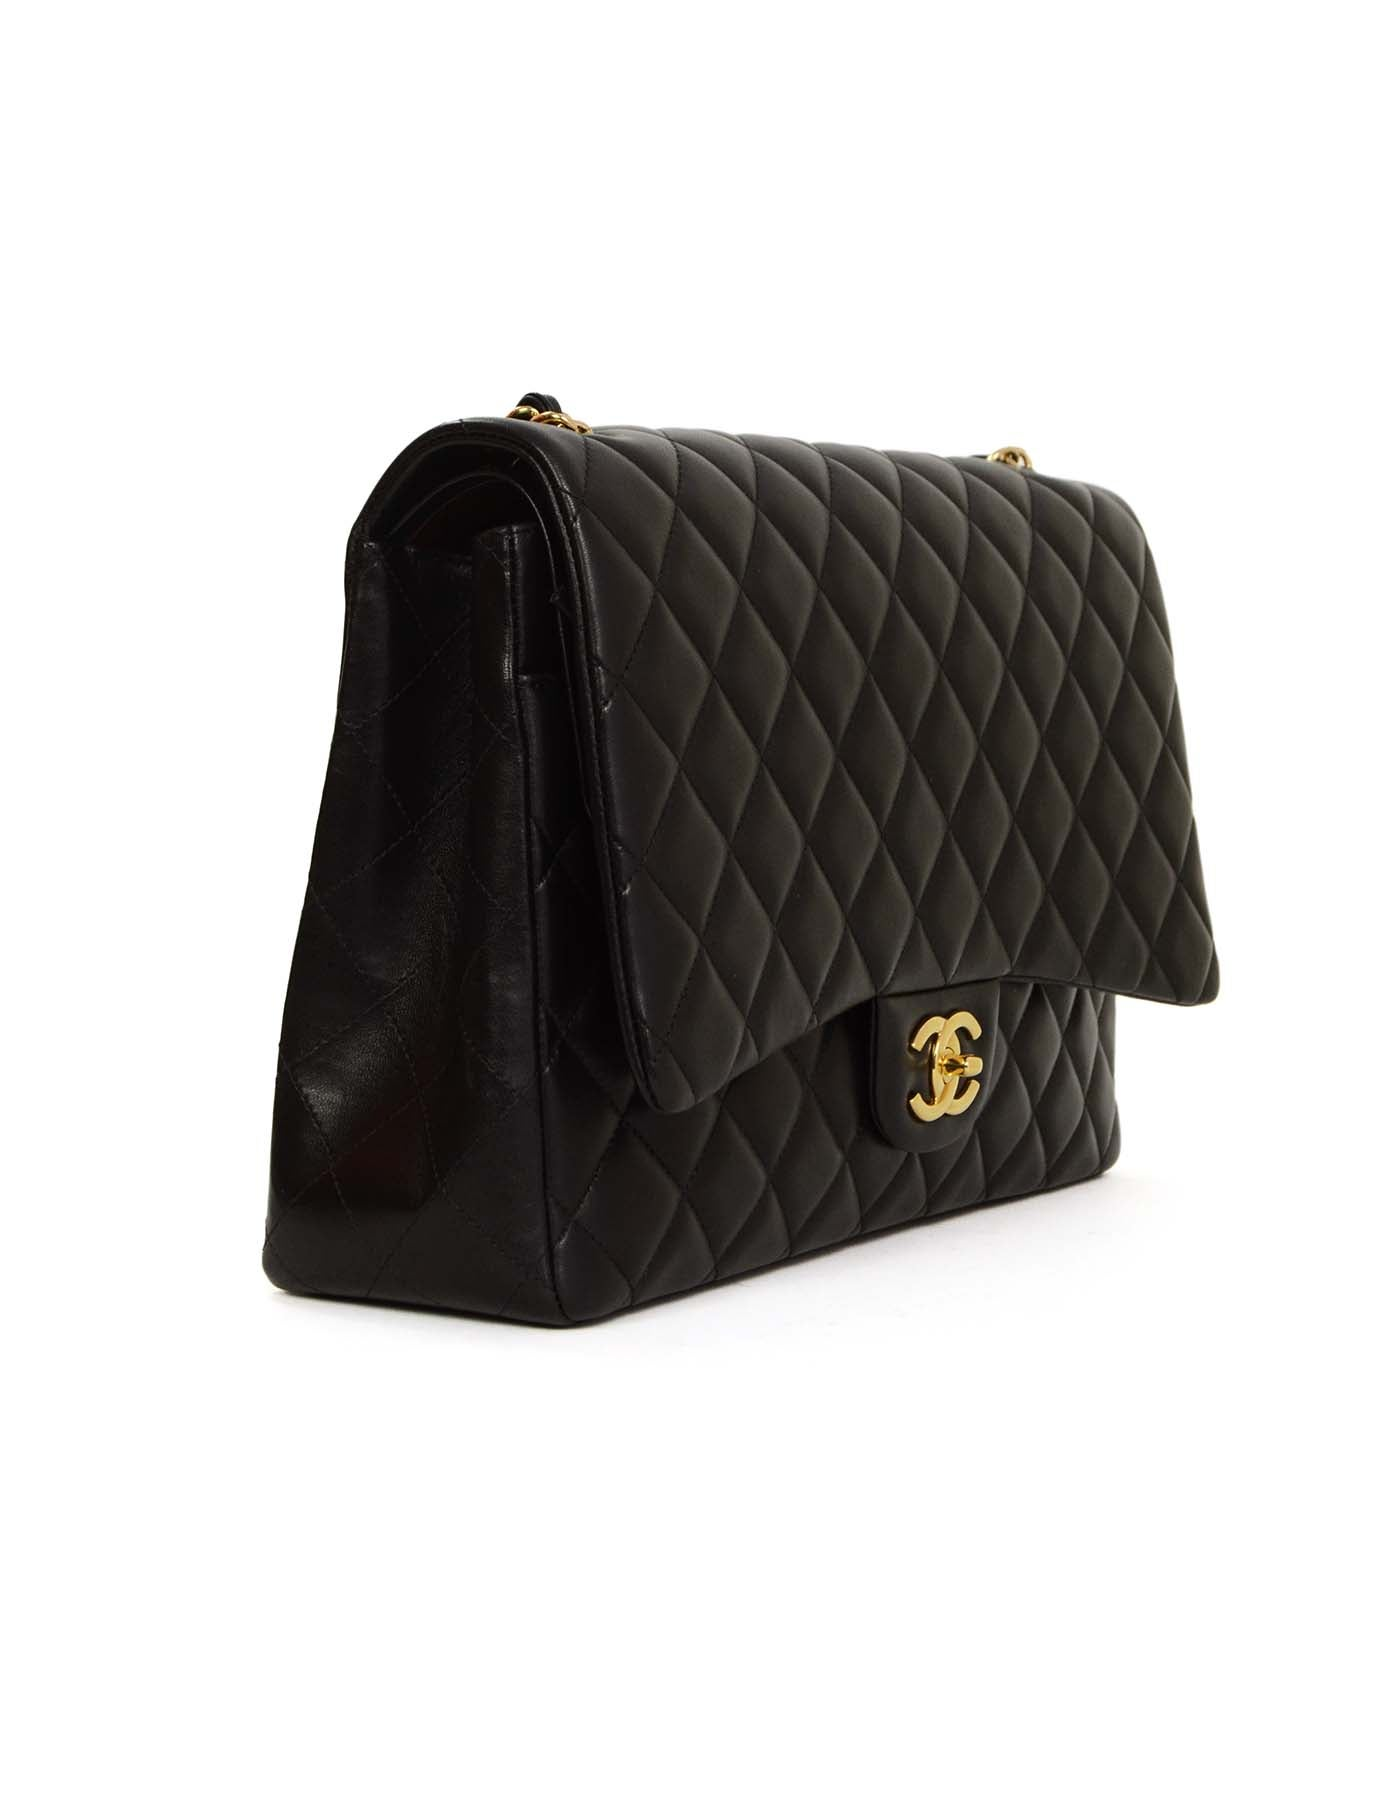 6dff5e8f22c4c3 Chanel Black Quilted Lambskin Maxi Classic Double Flap Bag GHW For Sale at  1stdibs